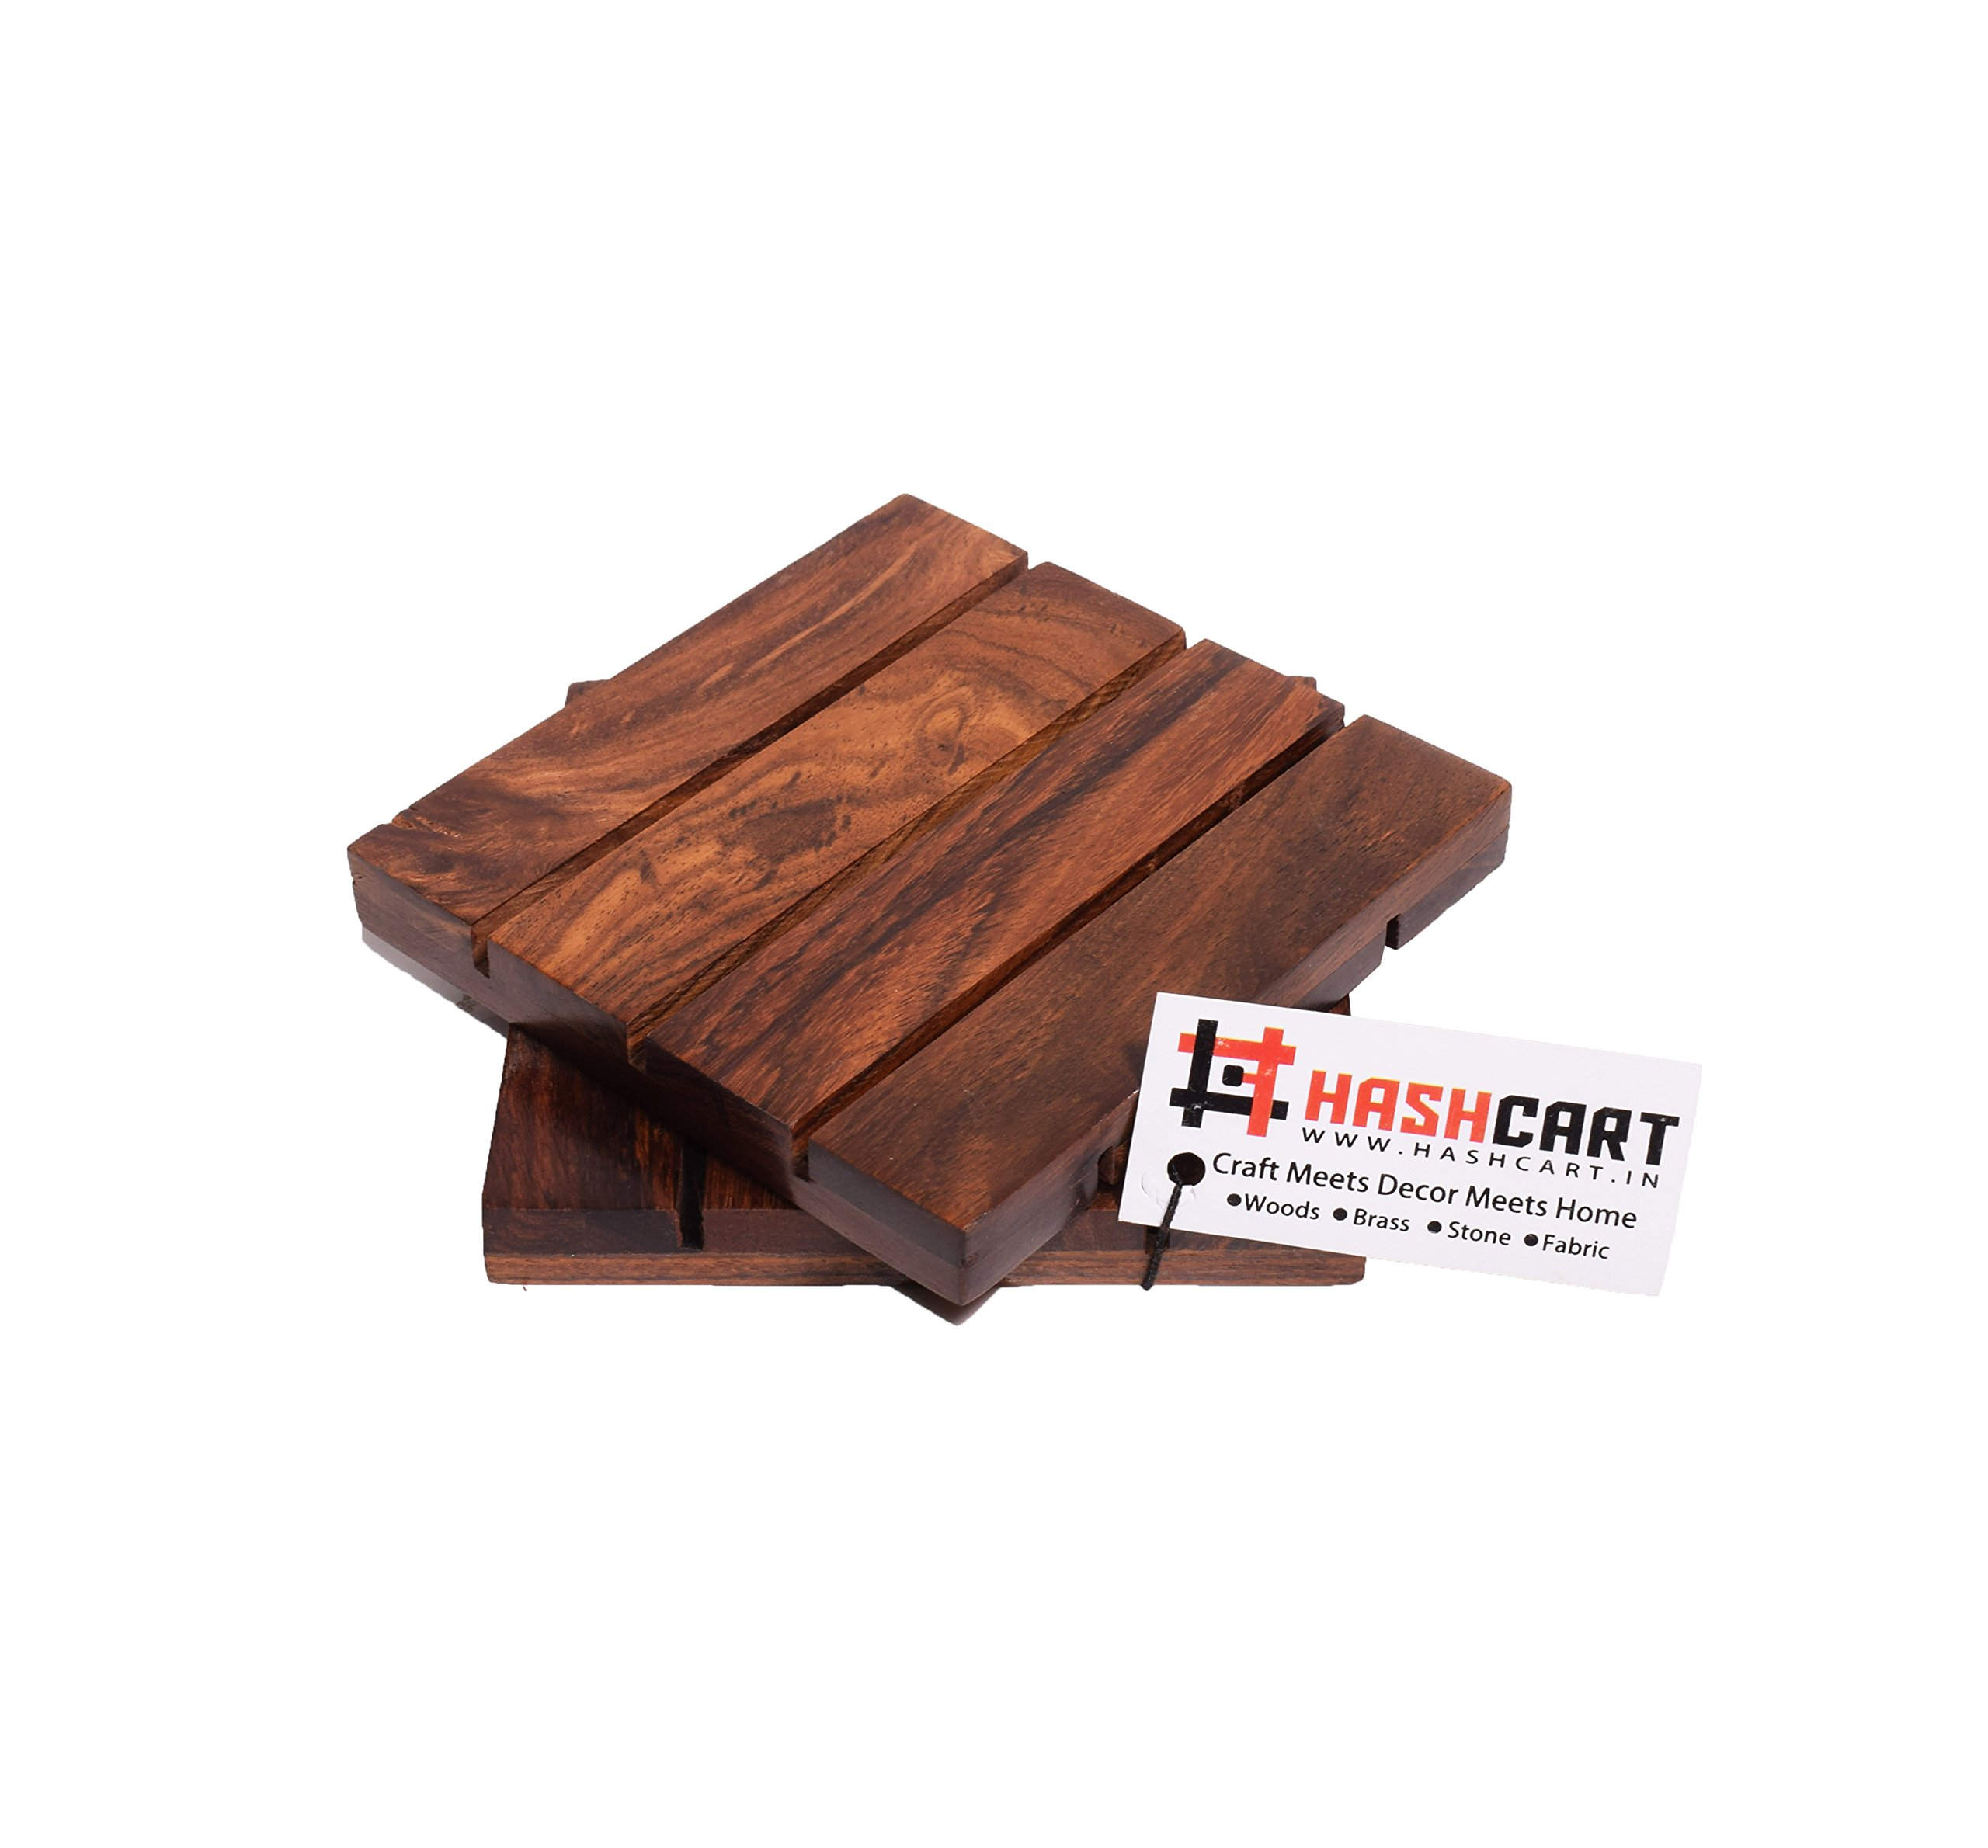 Hashcart Coasters for Drinks-Hot & Cold/Wooden Coaster Sets/Dining, Tea & Coffee Table Decorative Cocktail Coasters in Sheesham Wood | 4x4 inch | Set of 2 by Hashcart (Image #3)